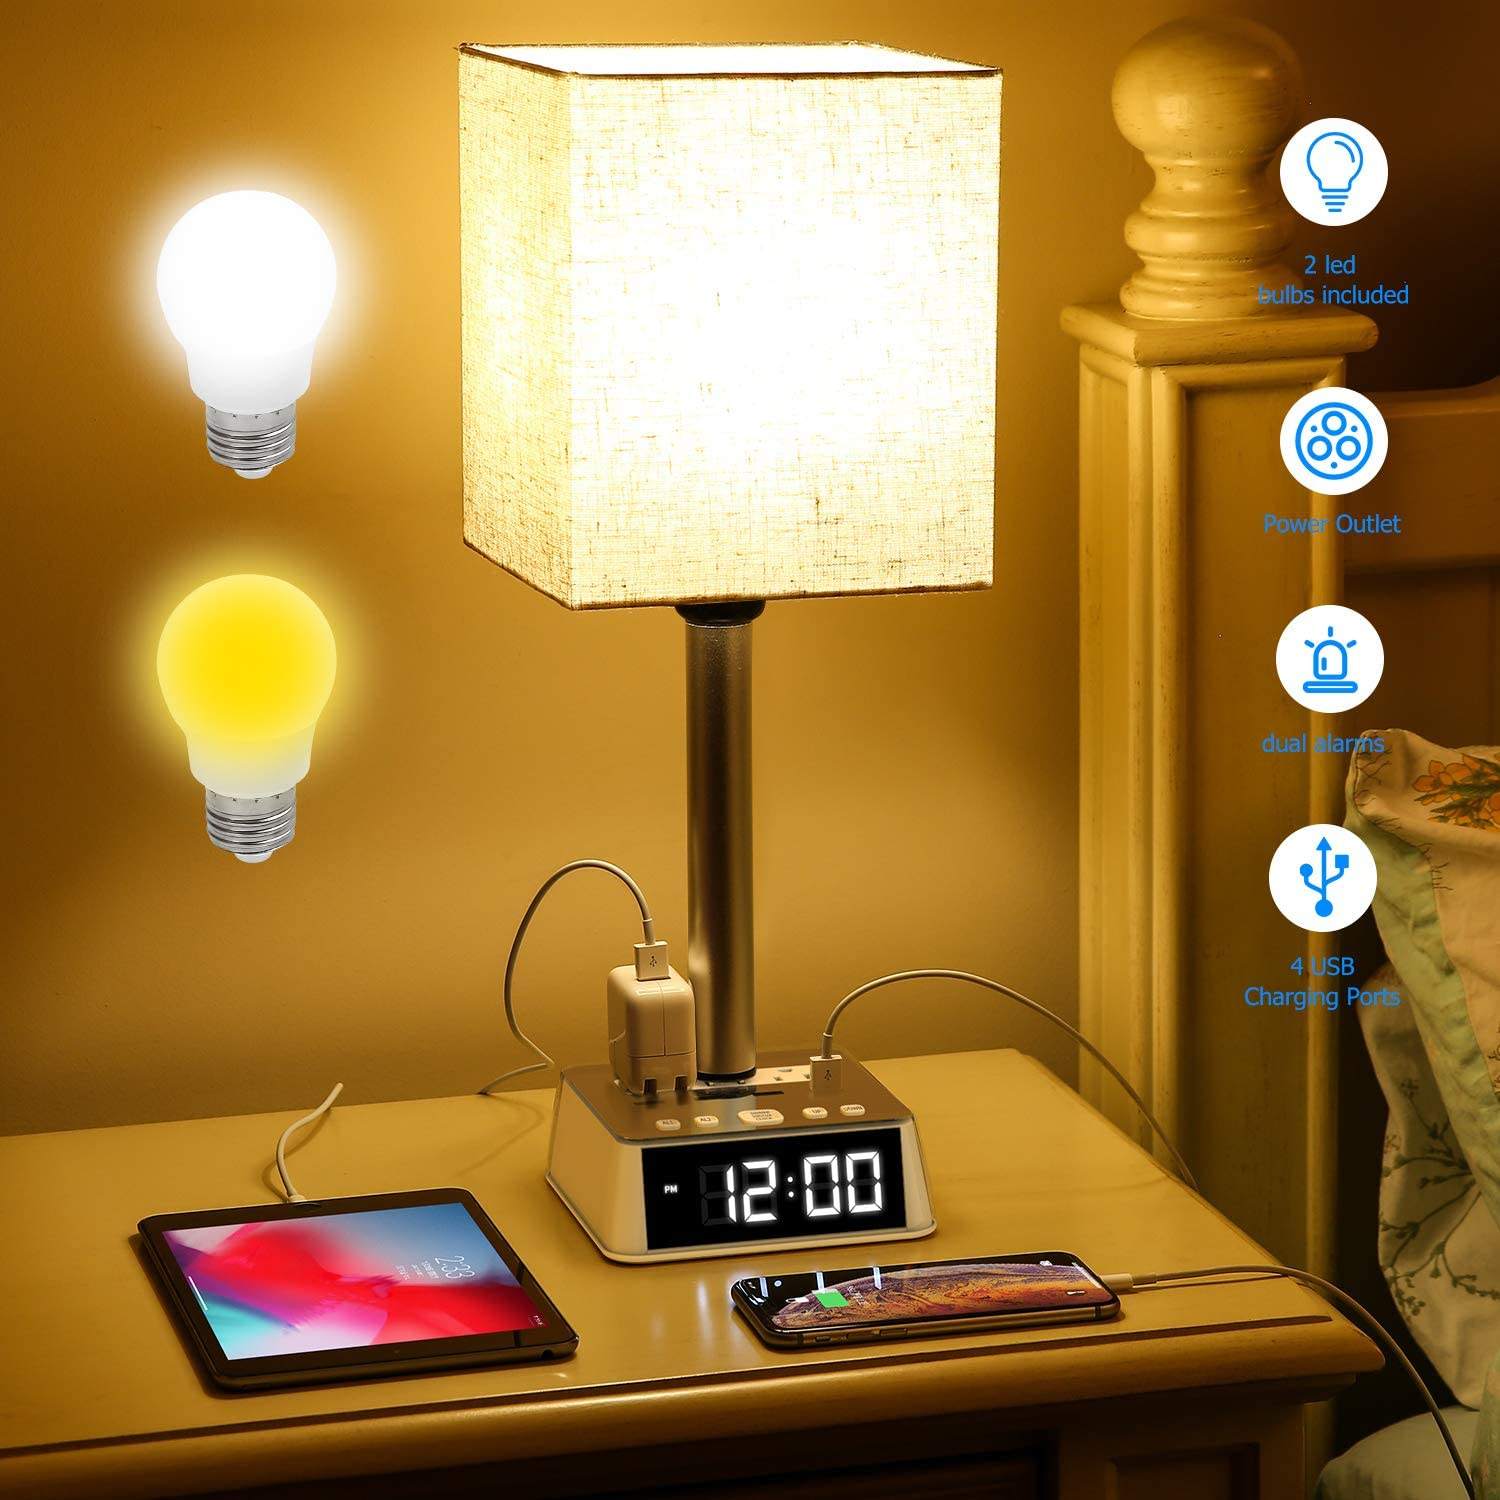 Table Lamp - Bedside Table Lamps with 4 USB Ports and AC Power Outlets, Alarm Clock Base with 6Ft Extension Cord, Square Oatmeal Fabric Lampshade Modern Accent Desk Lamp For Bedroom Living Room Office